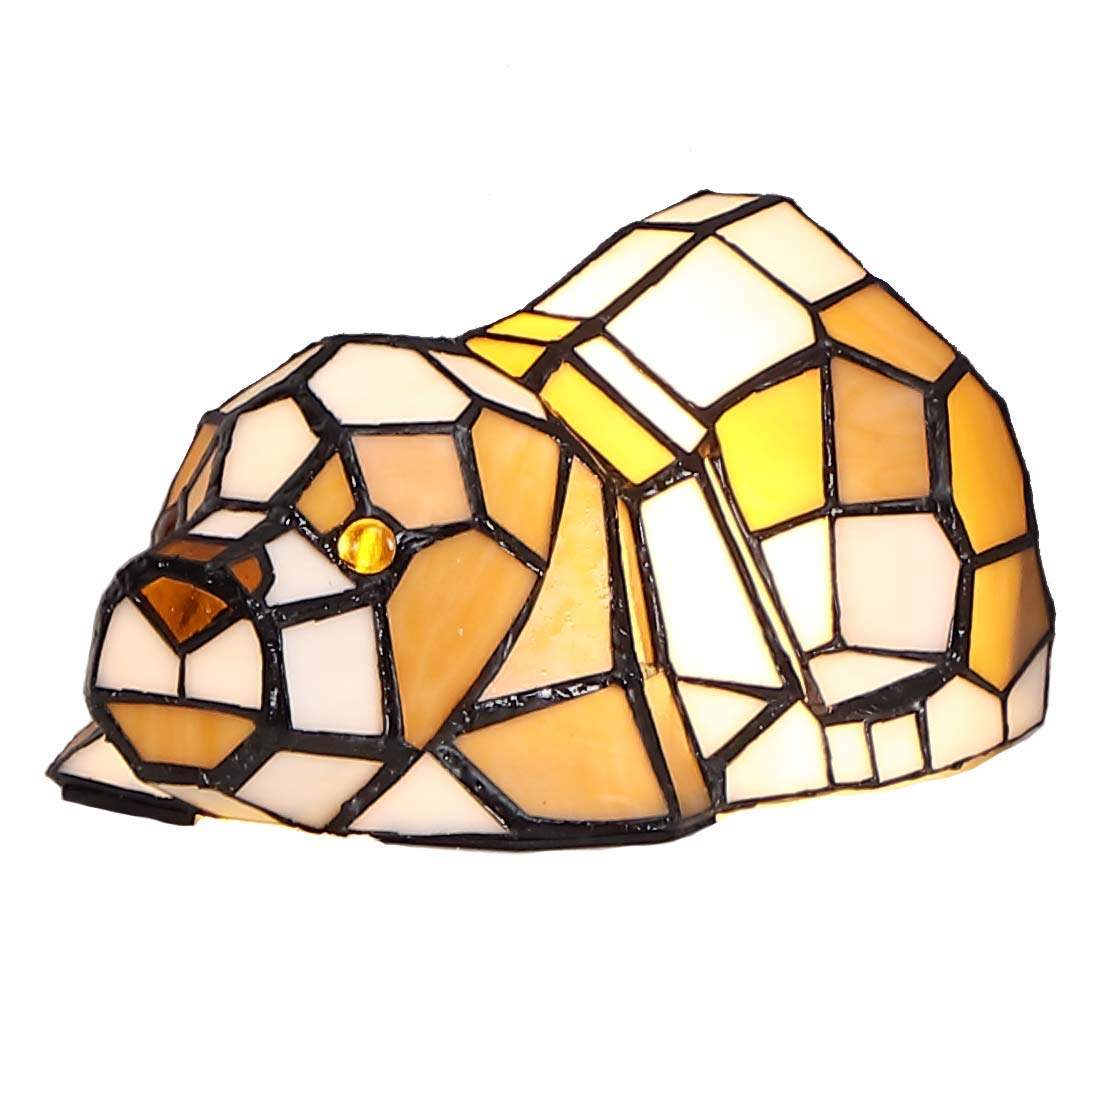 Bieye L10210 Cute Puppy Dog Patiently Waiting for Someone to Play with Tiffany Style Stained Glass Accent Table Lamp Night Light for Bedside Living Room Office Bedroom Animal Pet Lover, Orange